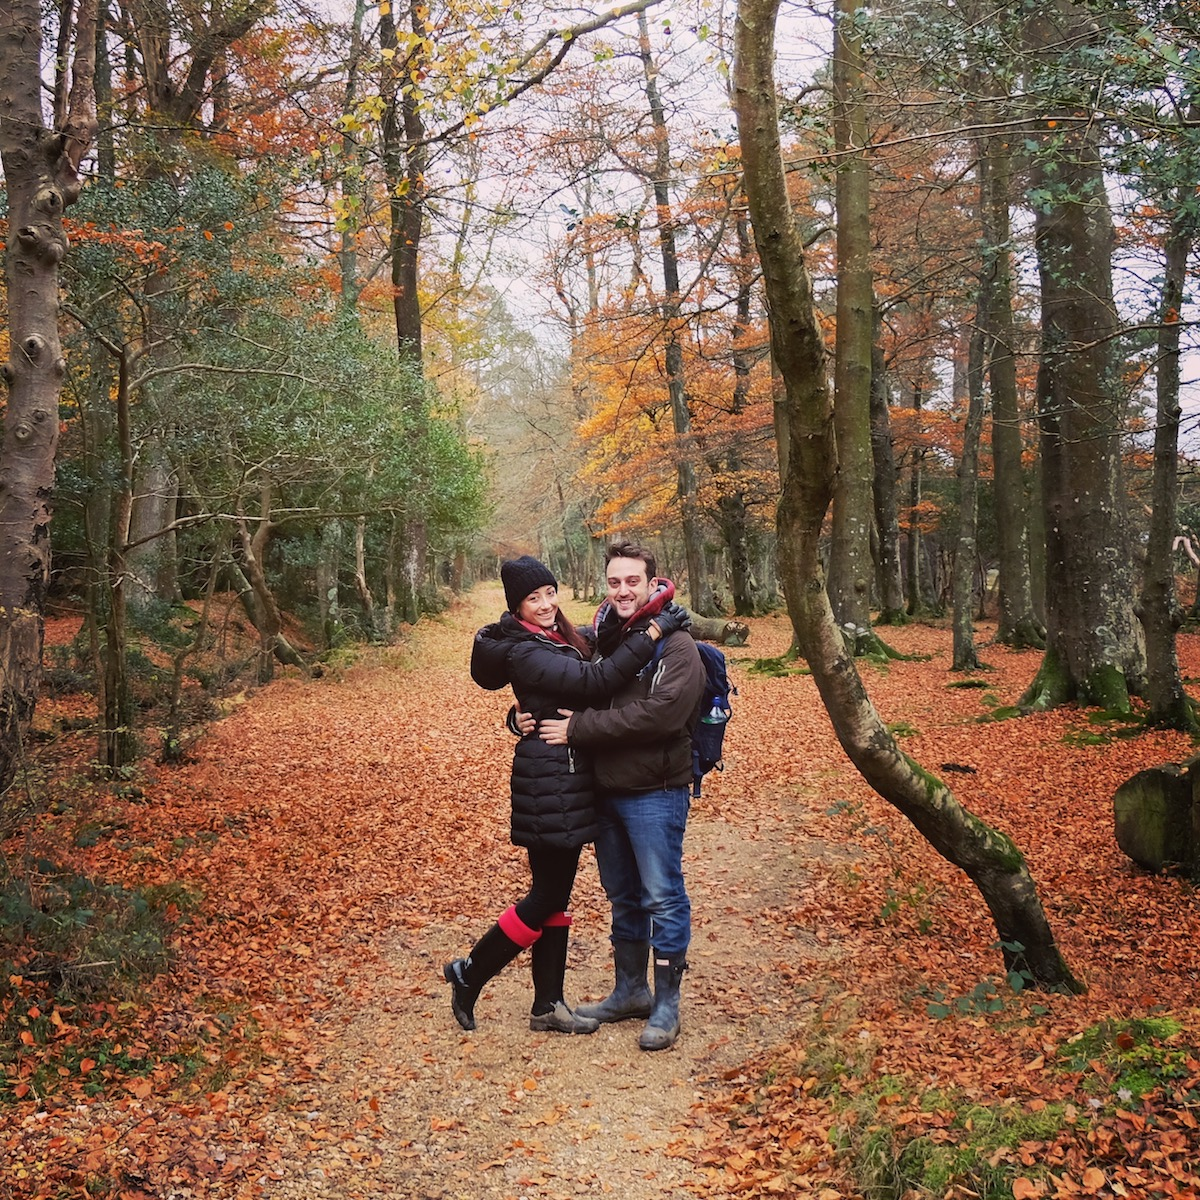 Mr and Miss Portmanteau in New Forest